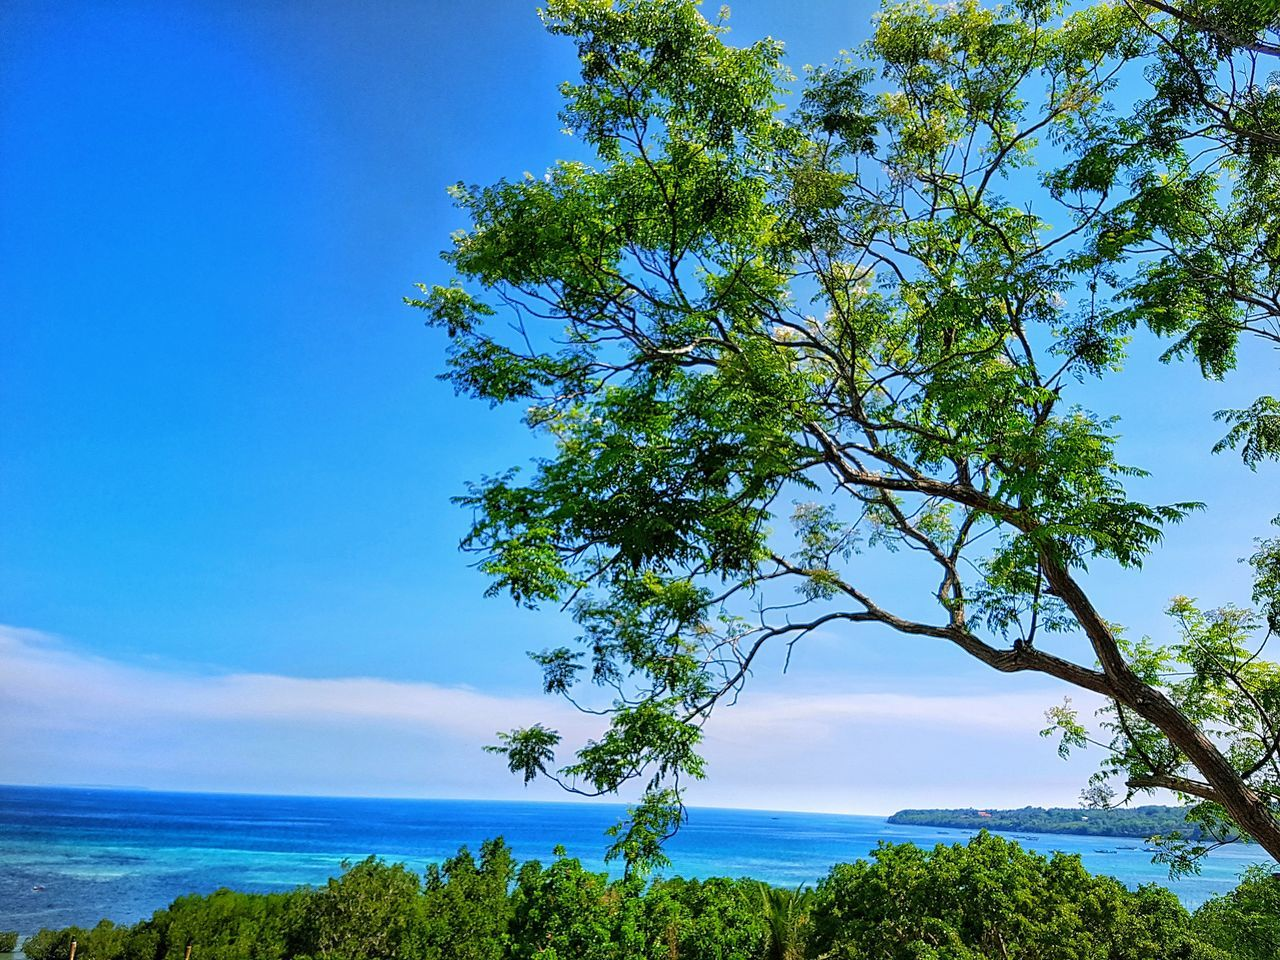 Seaduction Nature Tree Sea Blue Scenics Water Outdoors Beauty In Nature Sky Tranquil Scene Green Color EyeEm Nature Lover EyeEm Best Shots EyeEmNewHere Nature Photography Beauty In Nature Bohol Philippines